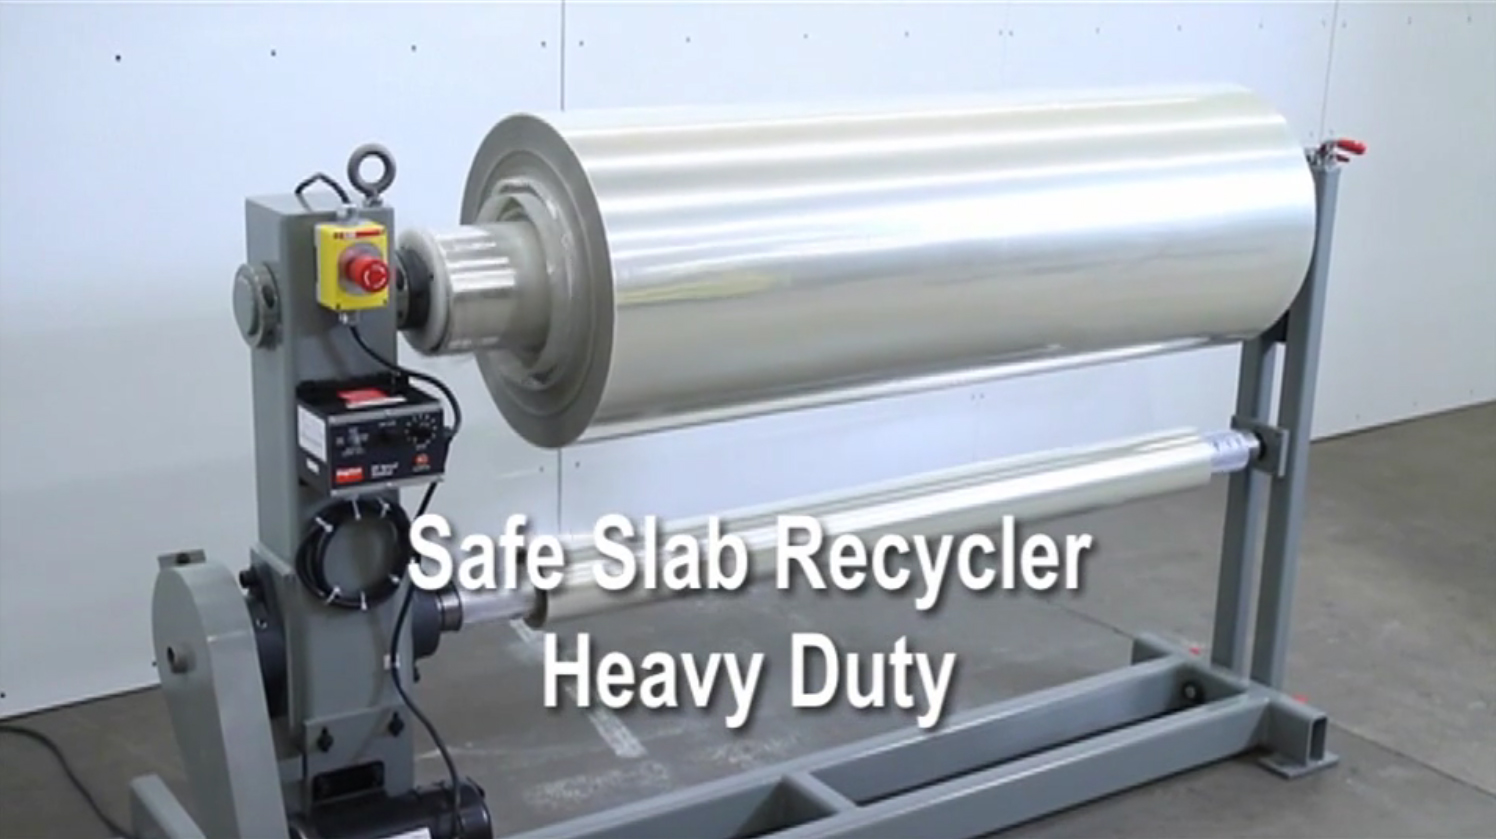 Heavy Duty Safe-Slab™ Overview